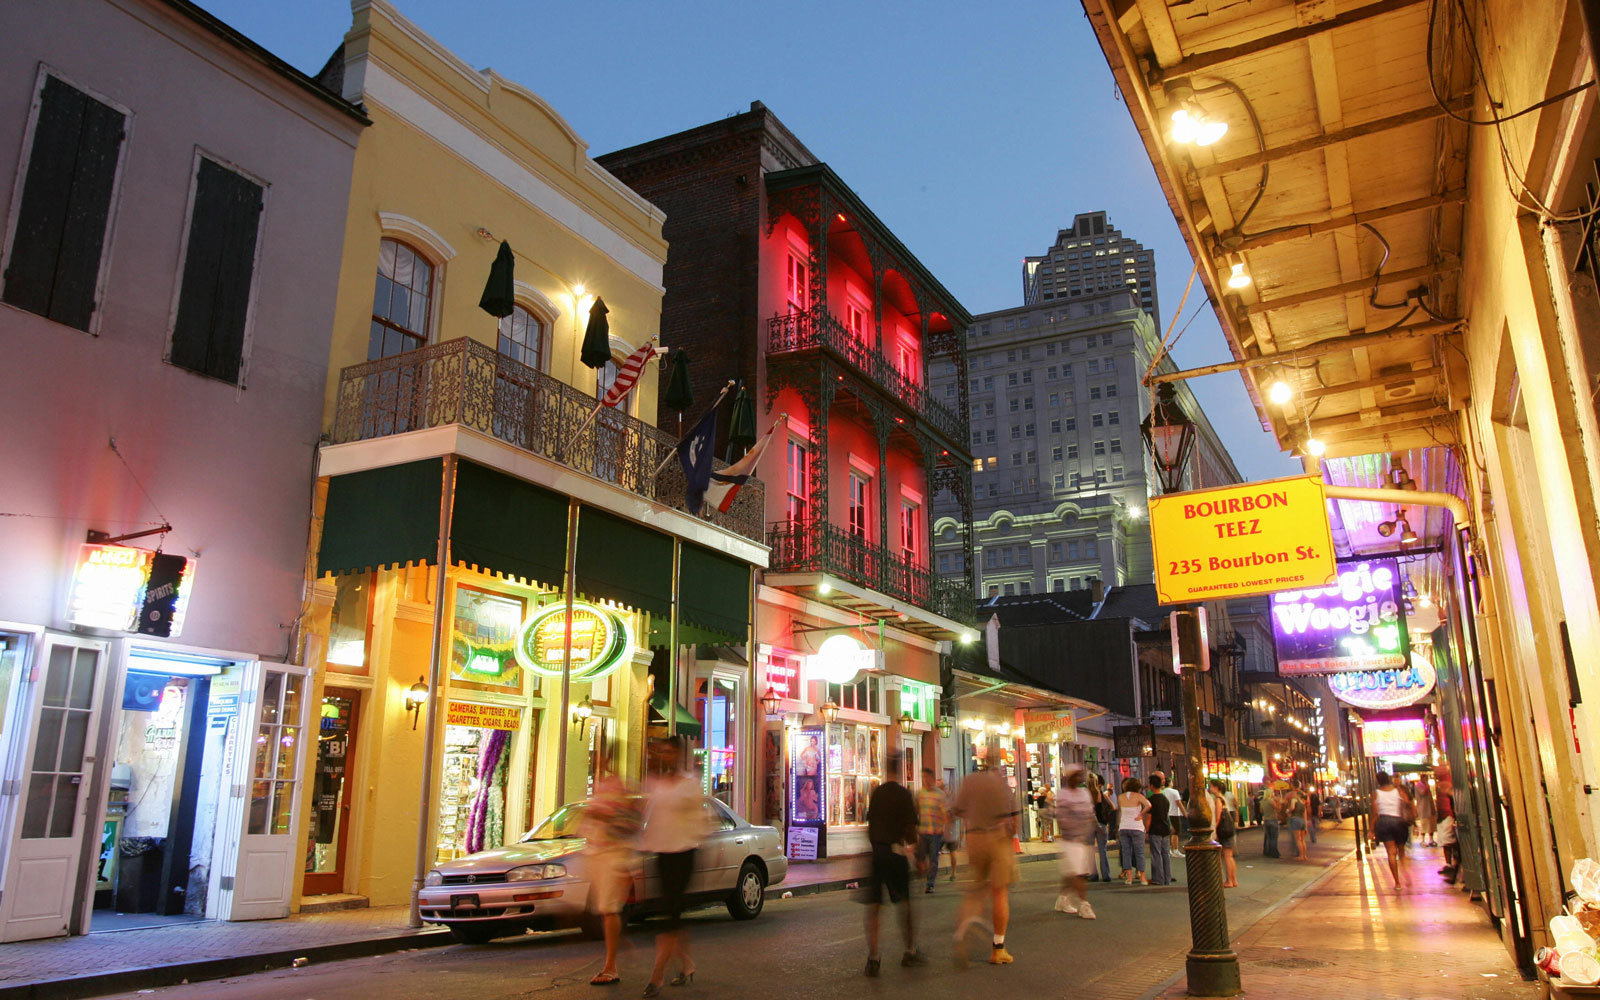 Virgin Hotels Plans New Hotel in New Orleans | Travel ...